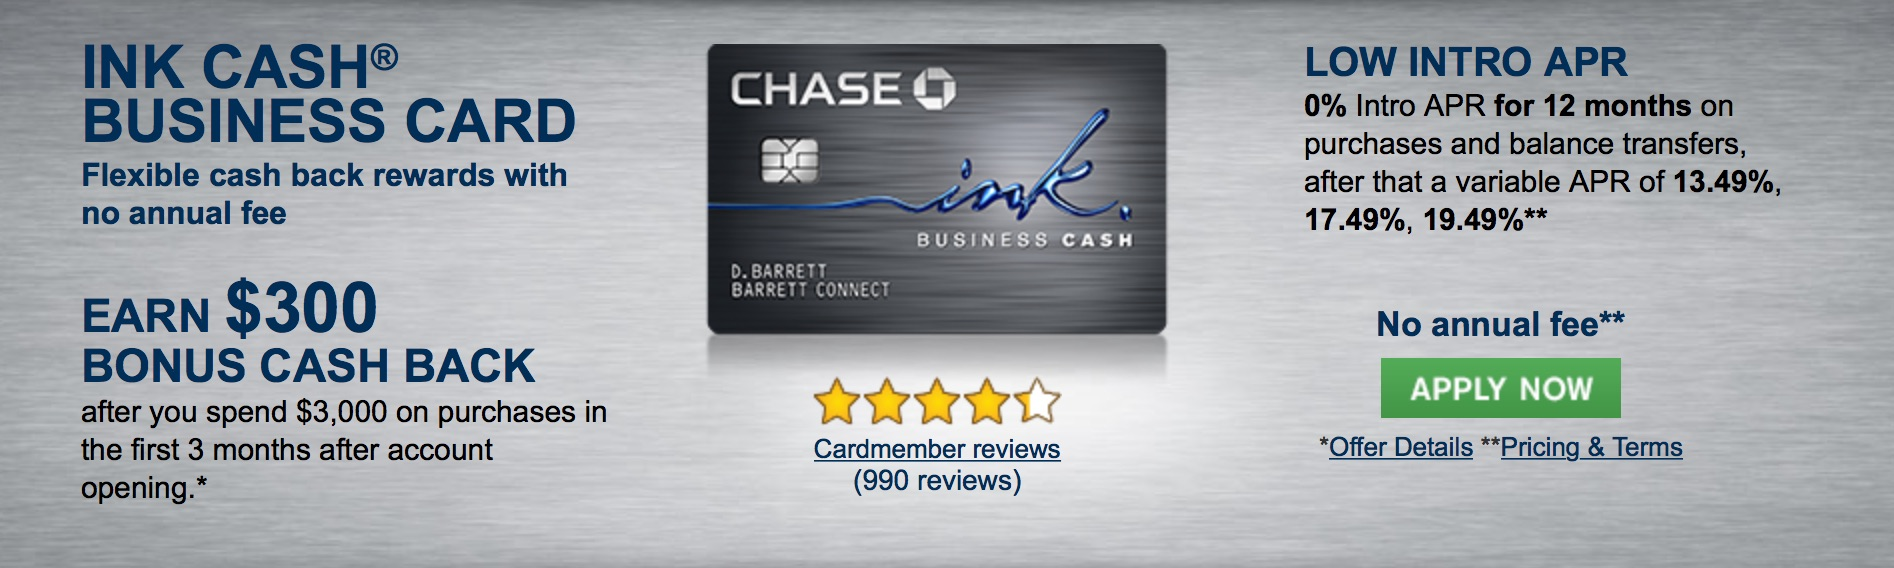 Chase ink business card review gallery free business cards chase ink cash business card choice image free business cards new details the ink business preferred magicingreecefo Gallery